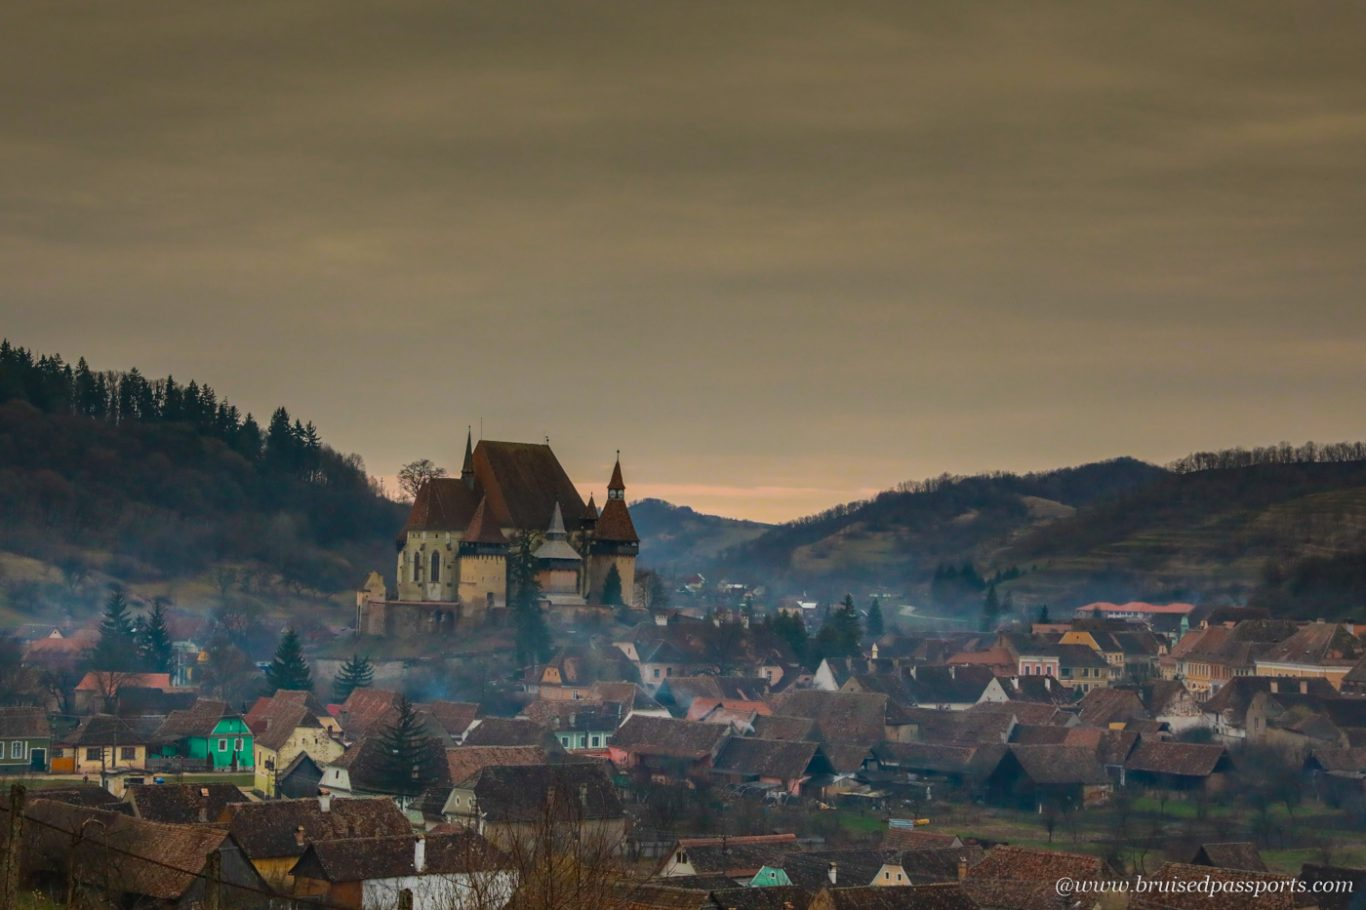 sunset at Biertan near Sighisoara